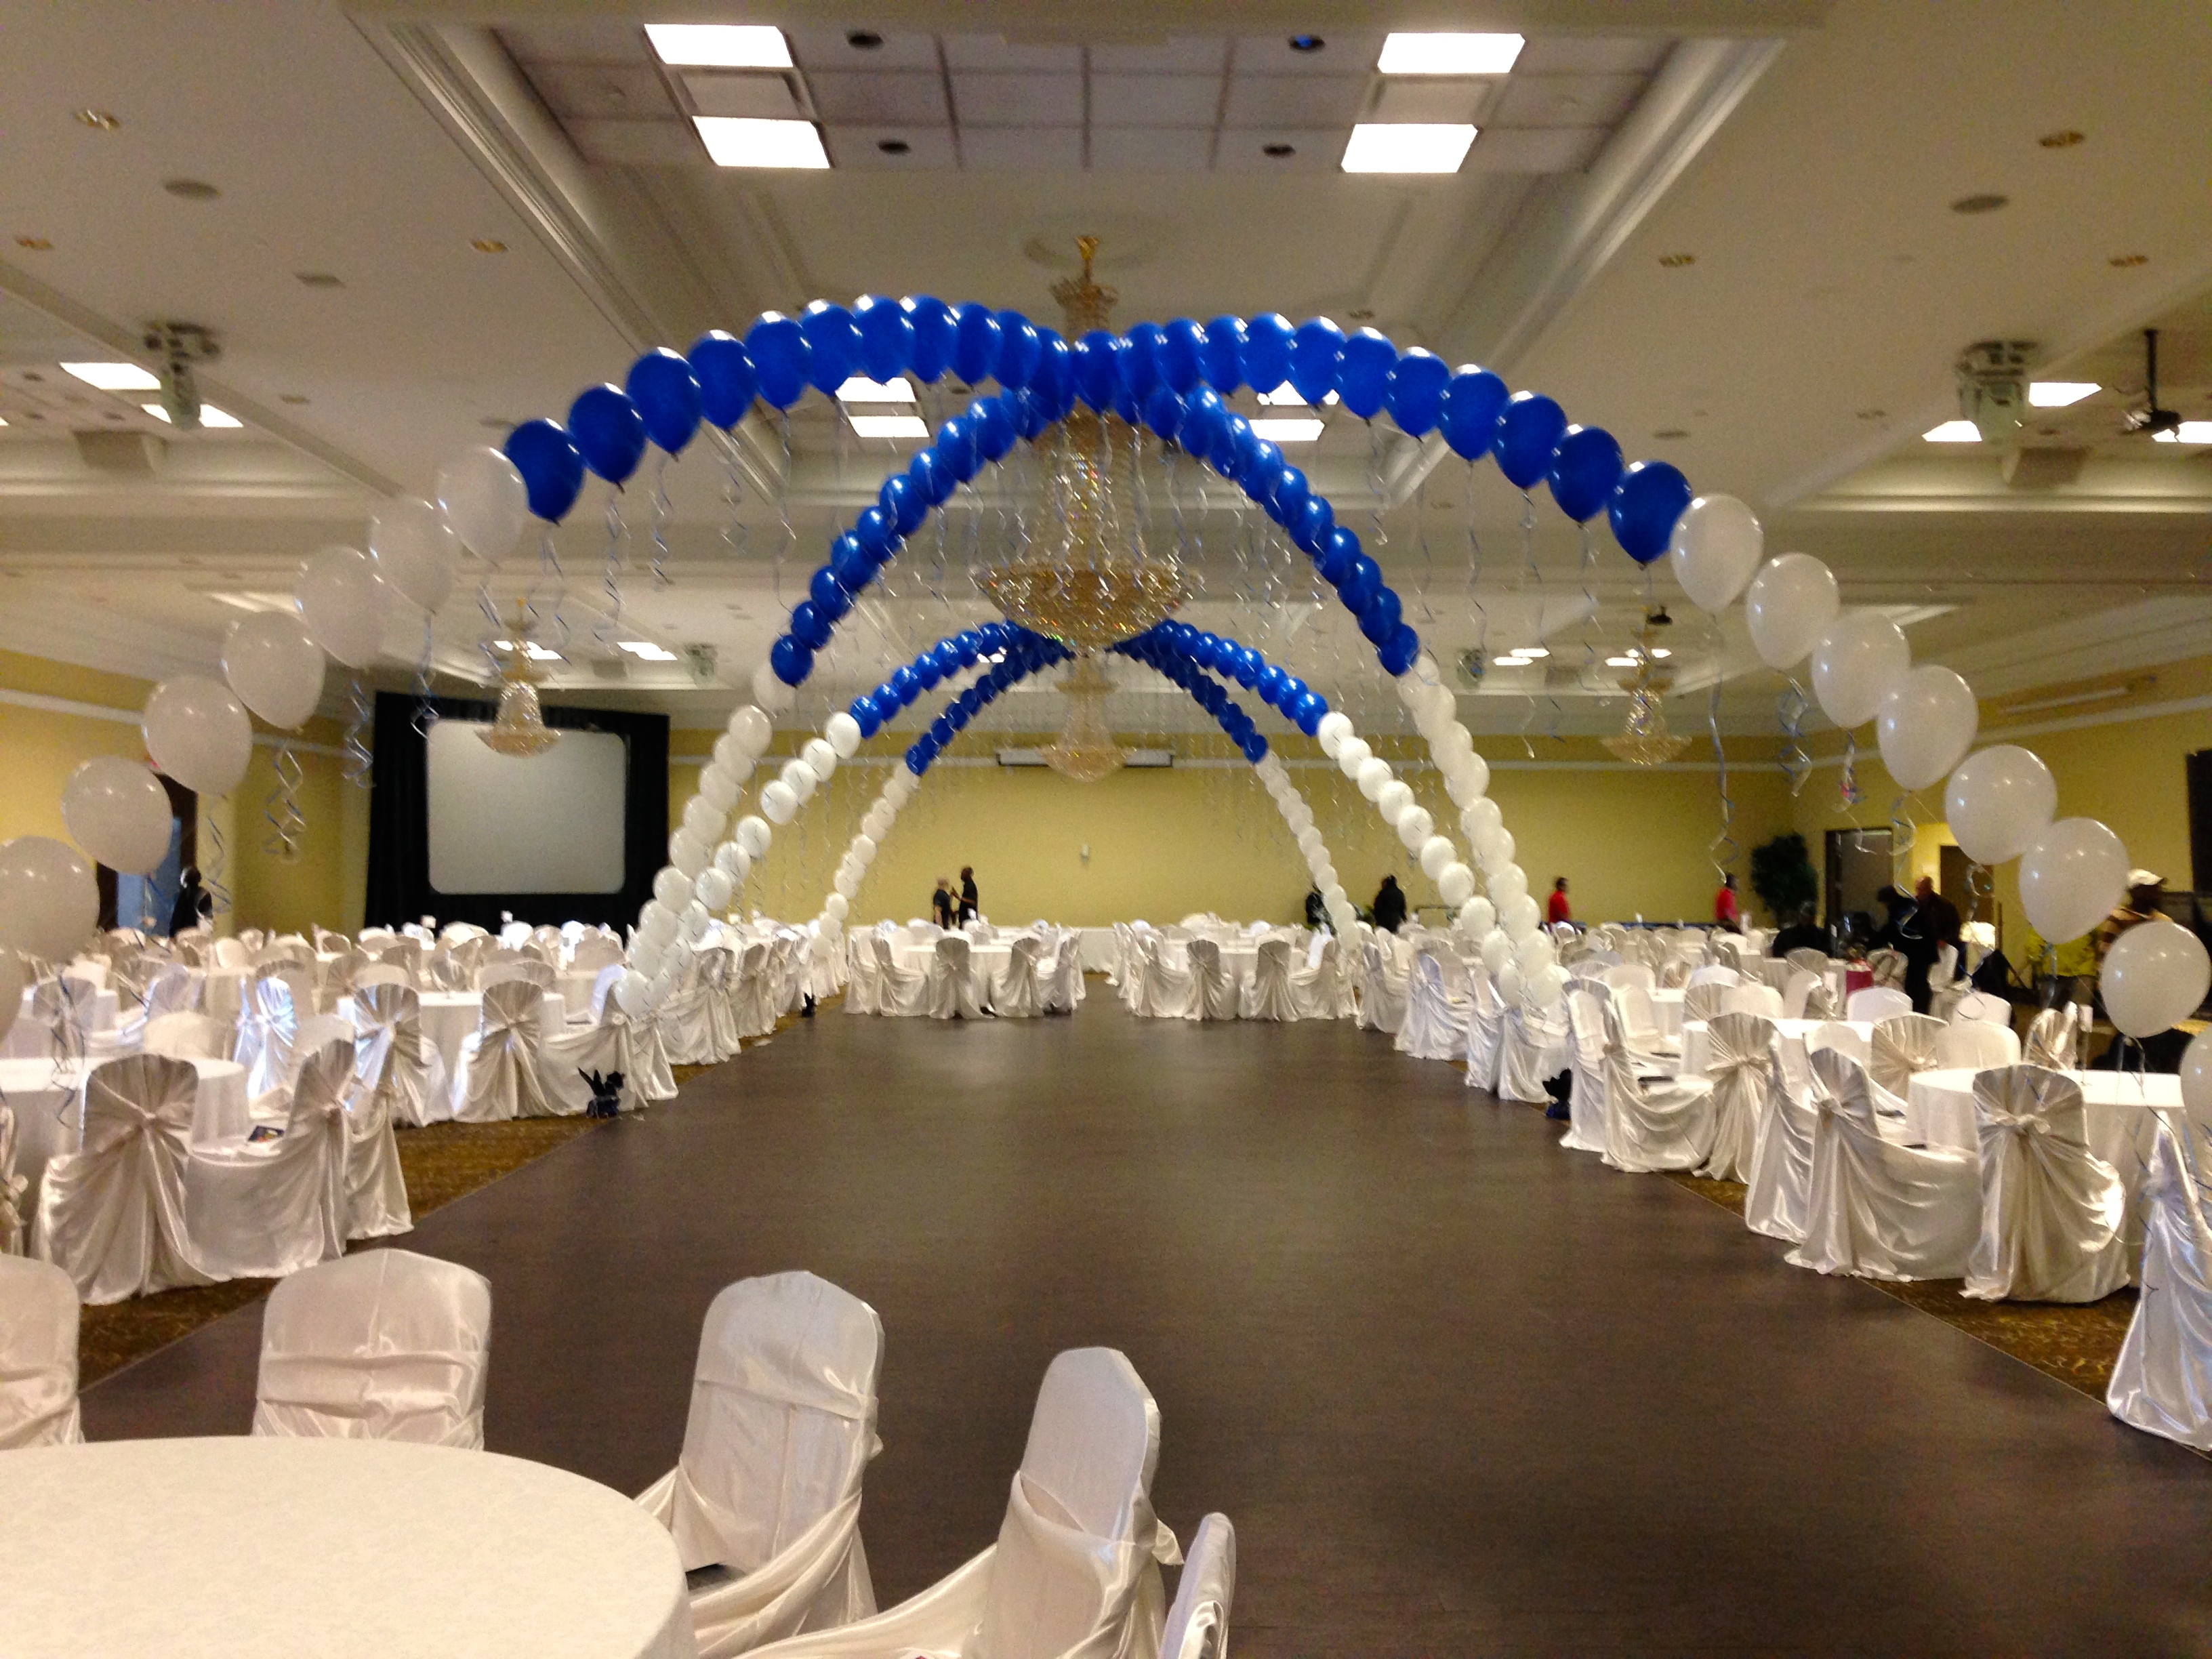 Balloon decorations sas party decorations for Balloon decoration ideas